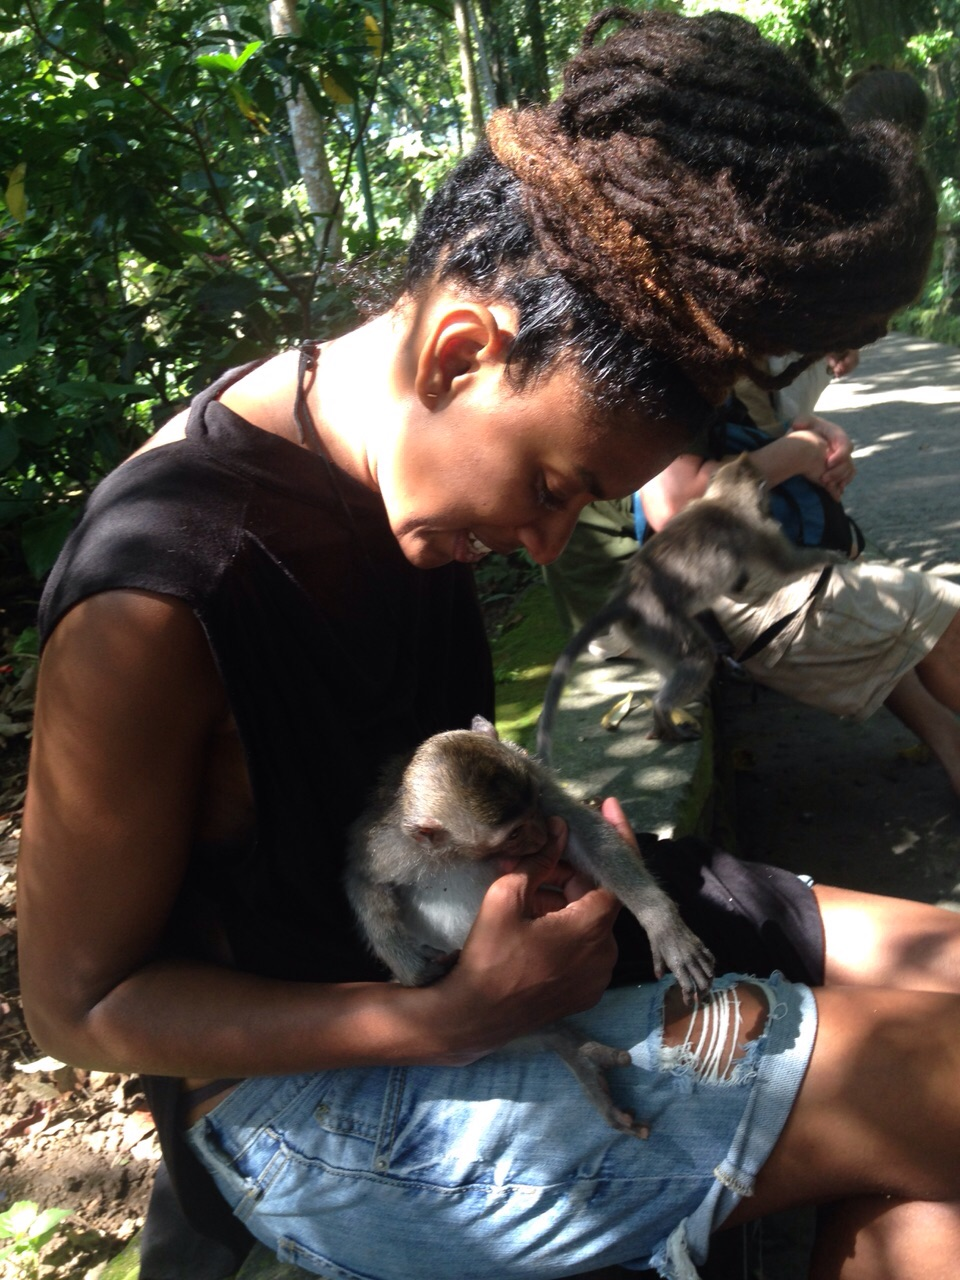 3. Interacting with monkeys at Monkey Forest